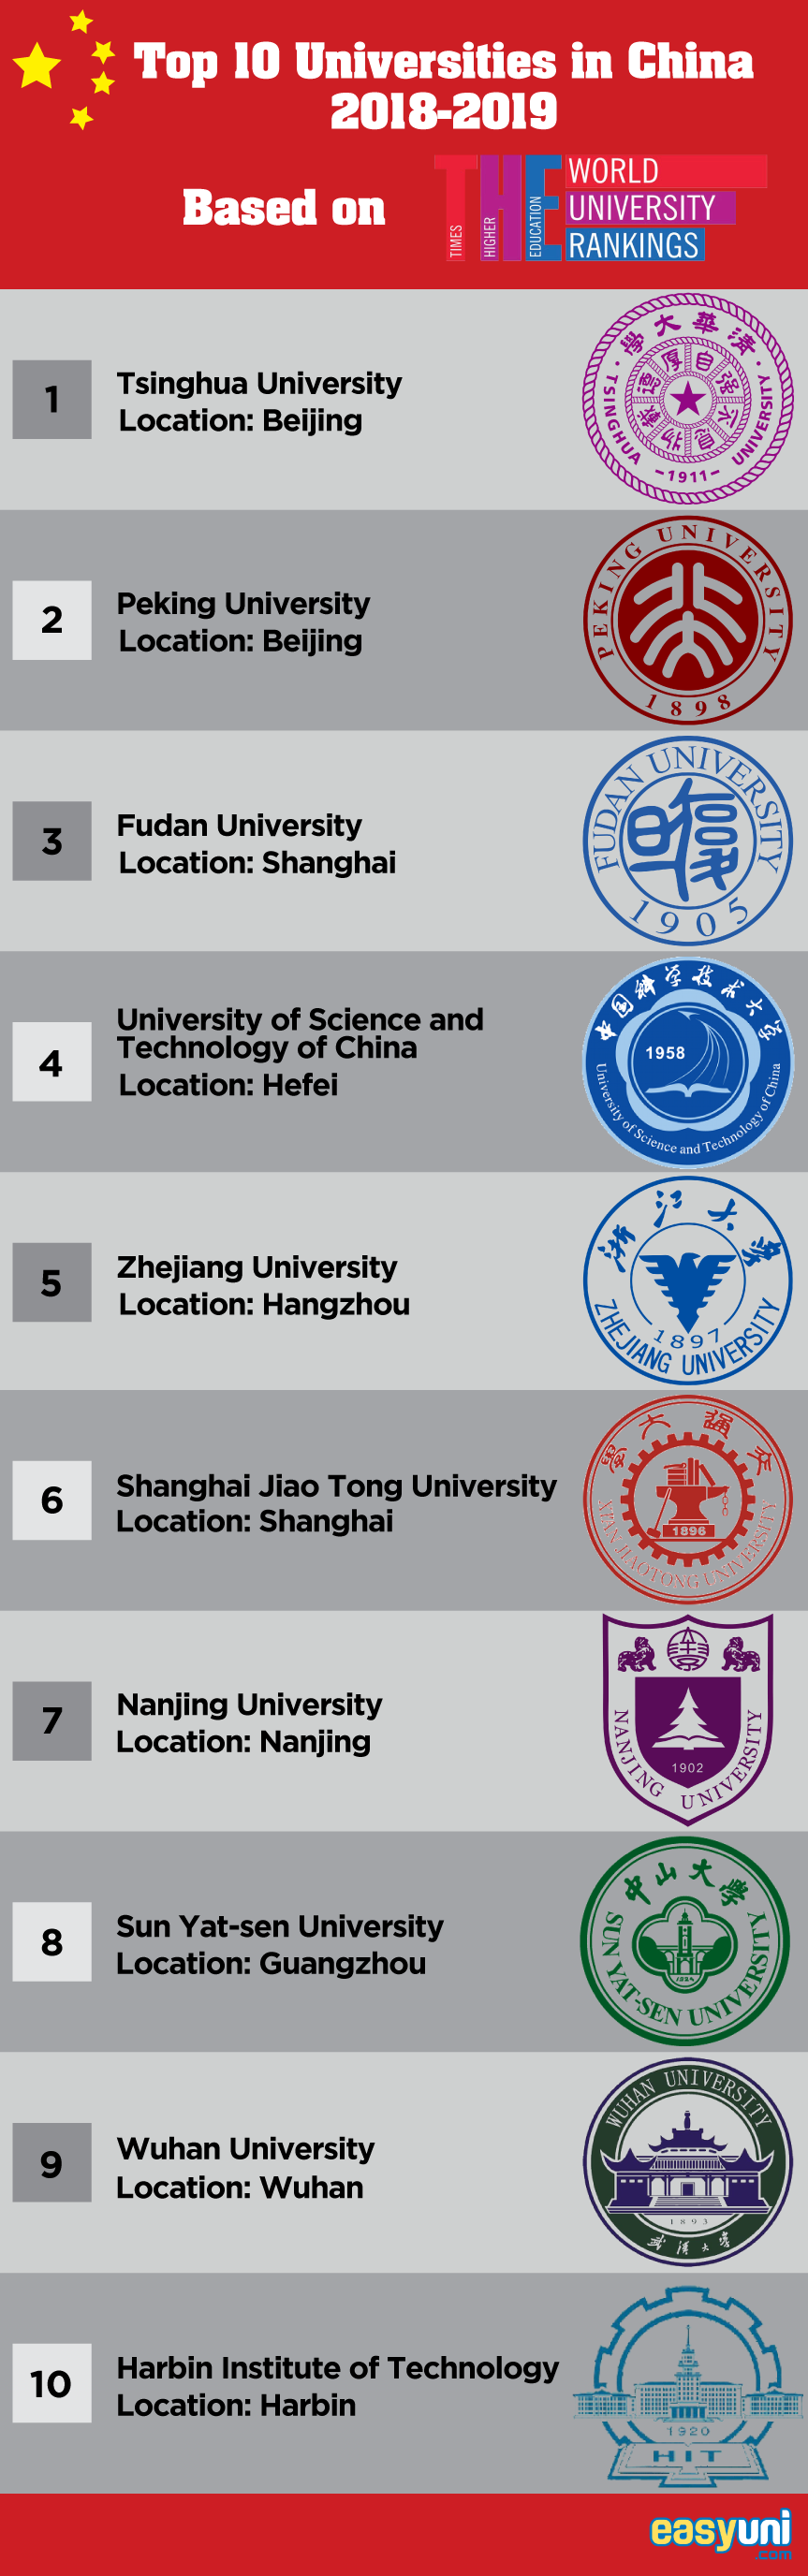 Top 10 Universities in China 2019